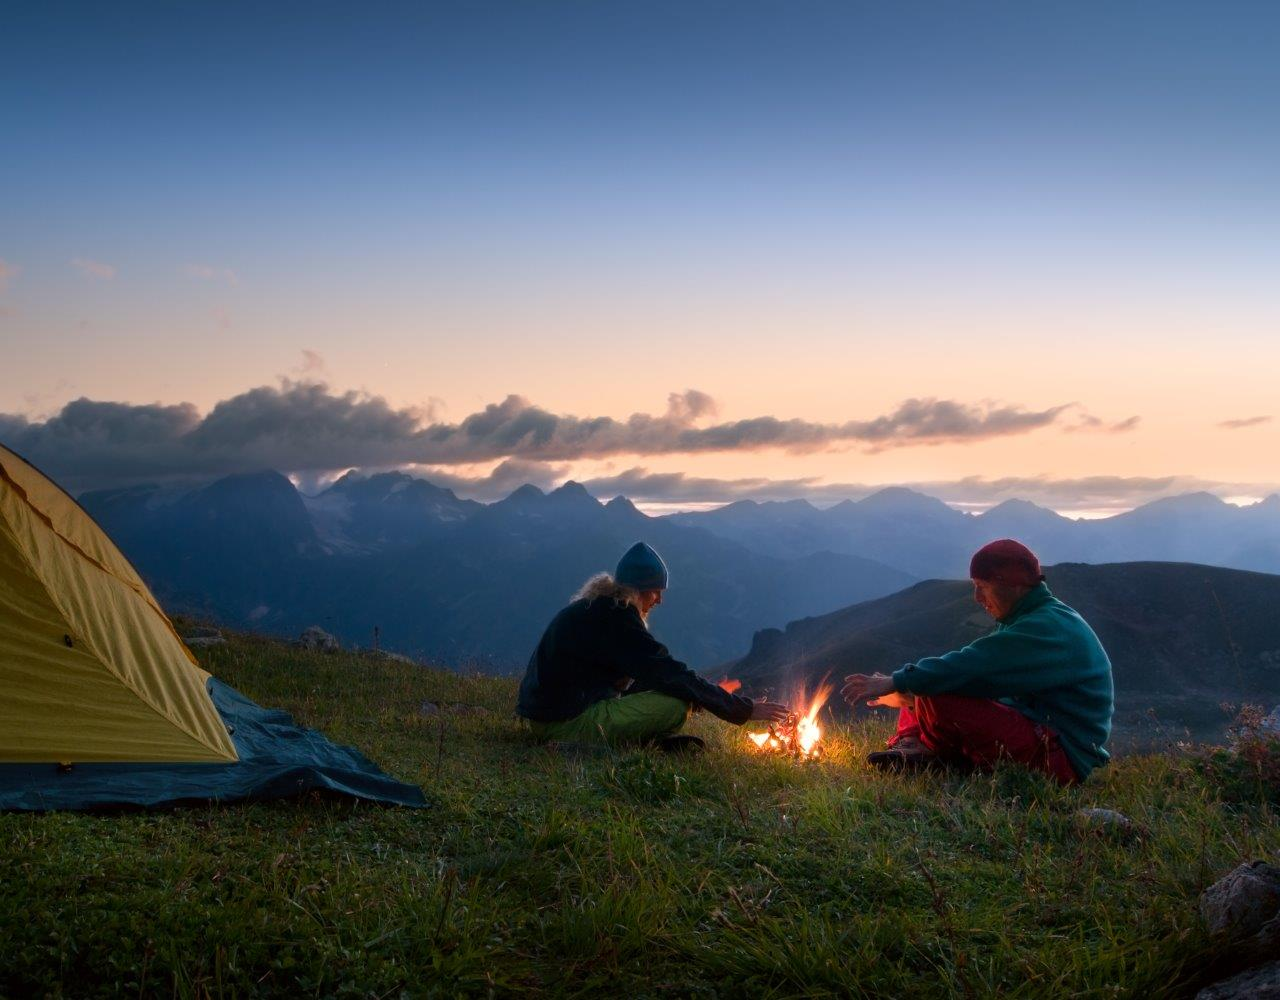 Two people tent camping in the mountains at night with a campfire